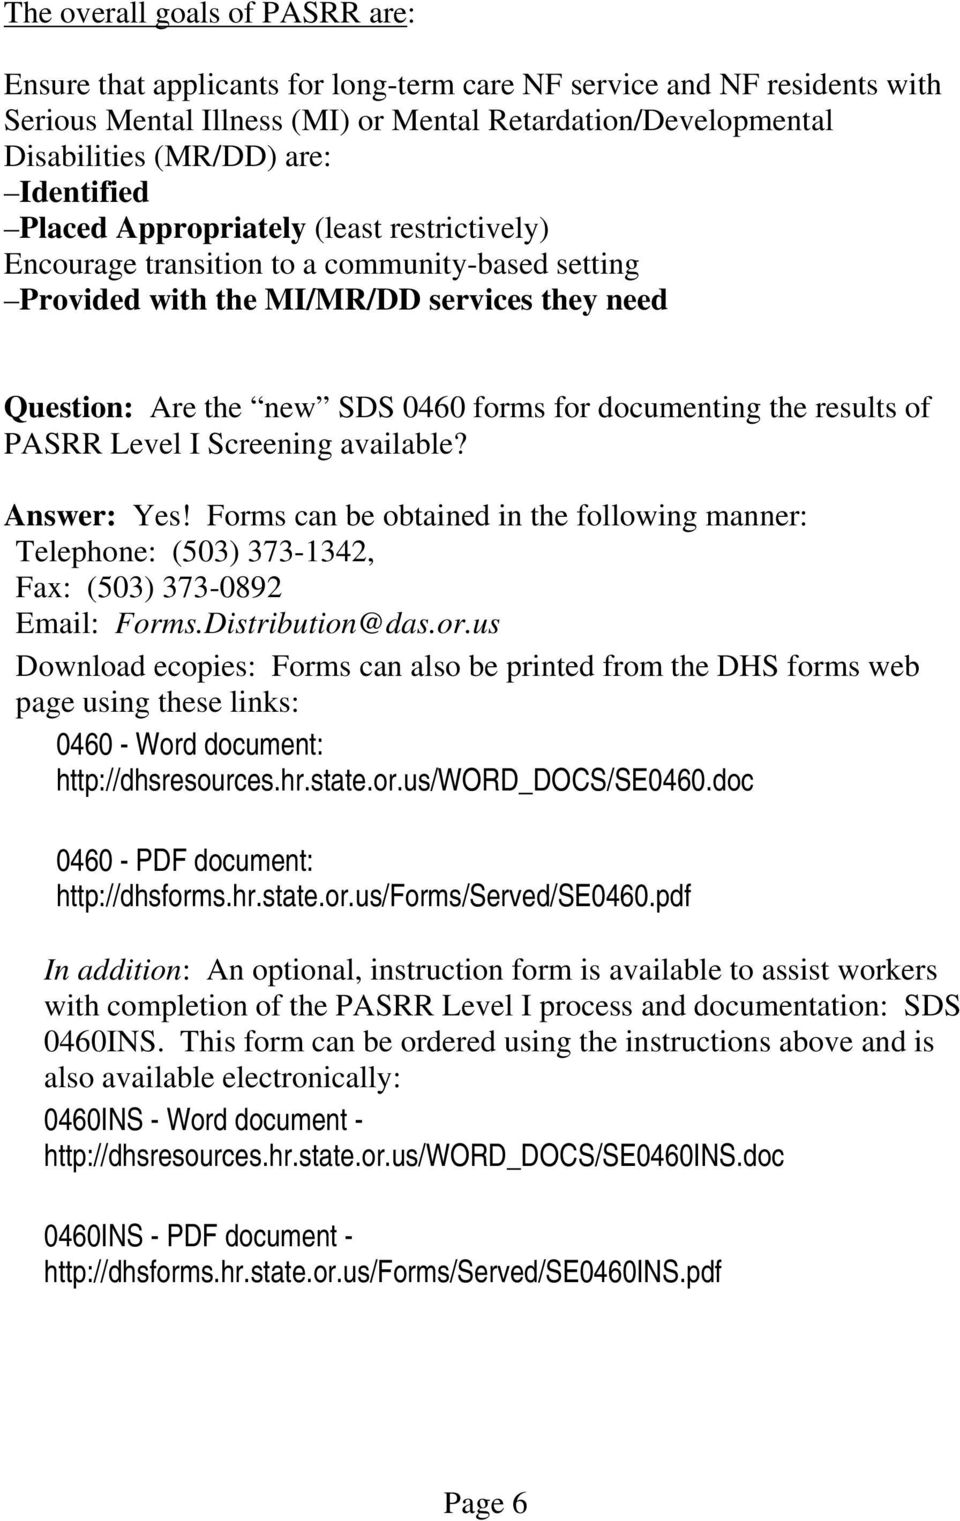 documenting the results of PASRR Level I Screening available? Yes! Form